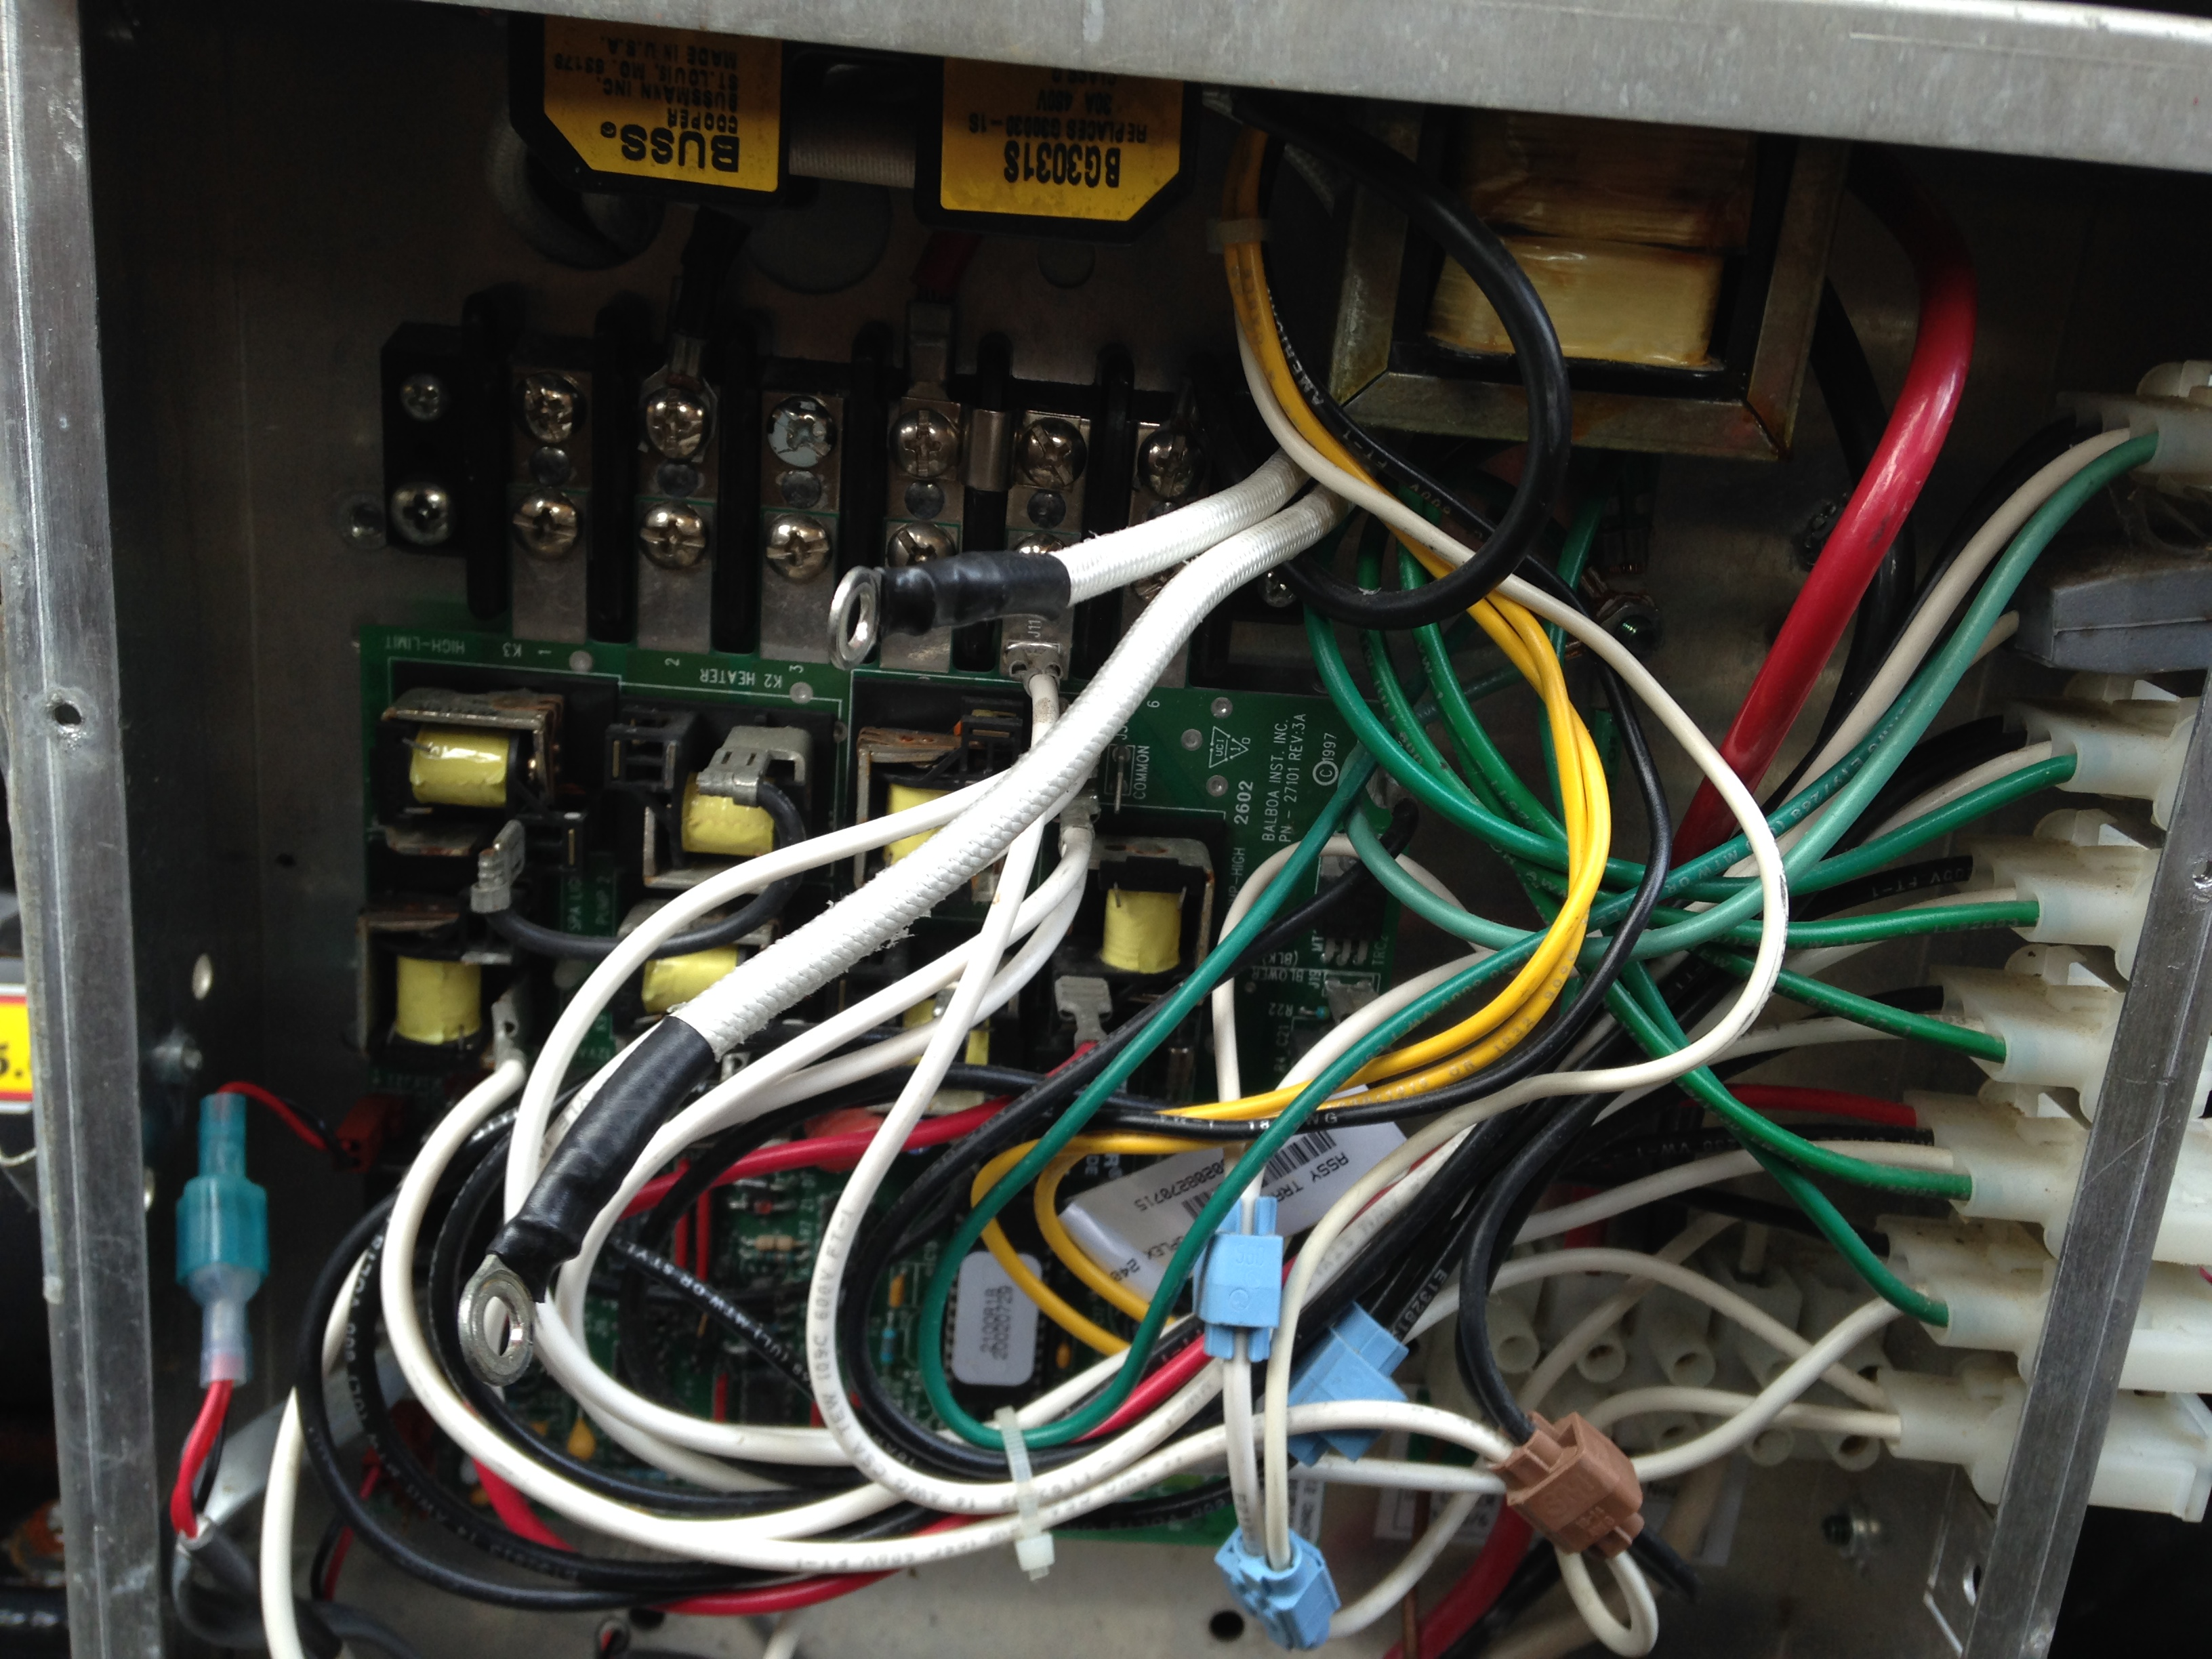 cal spa pump wiring diagram sequence and collaboration watkins heater hot tub replacement